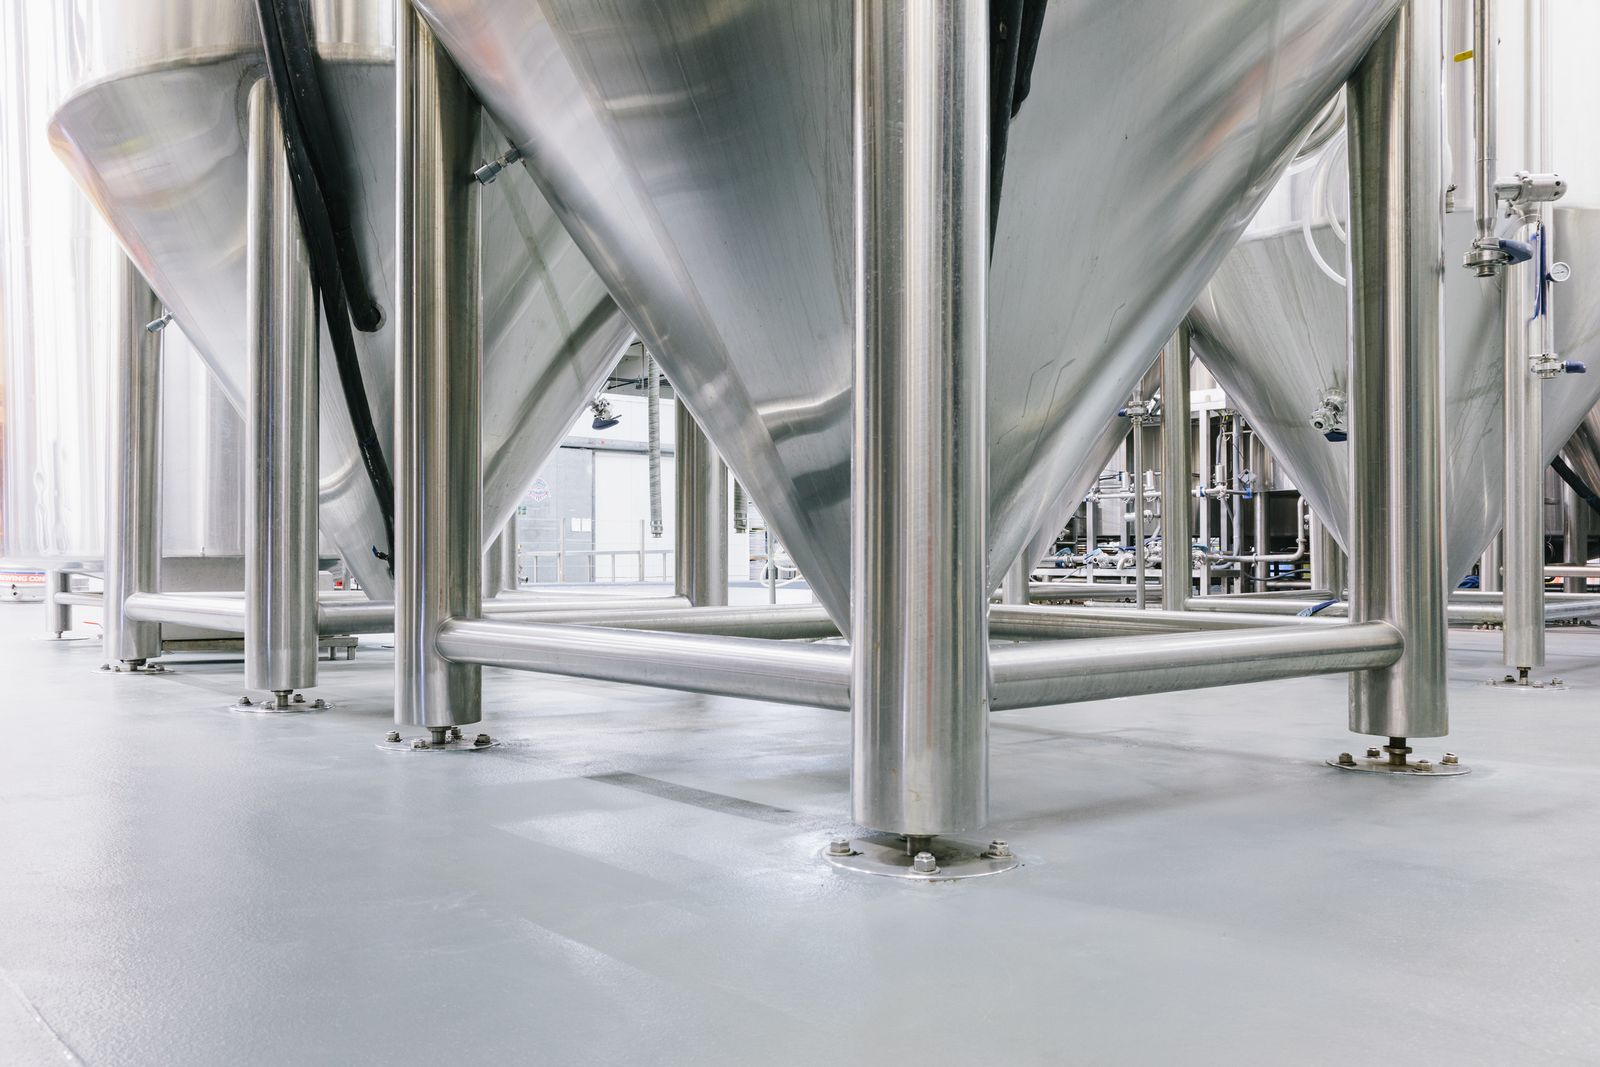 Large brewery drums of beer are placed on concrete floors and the process can affect the sealer.